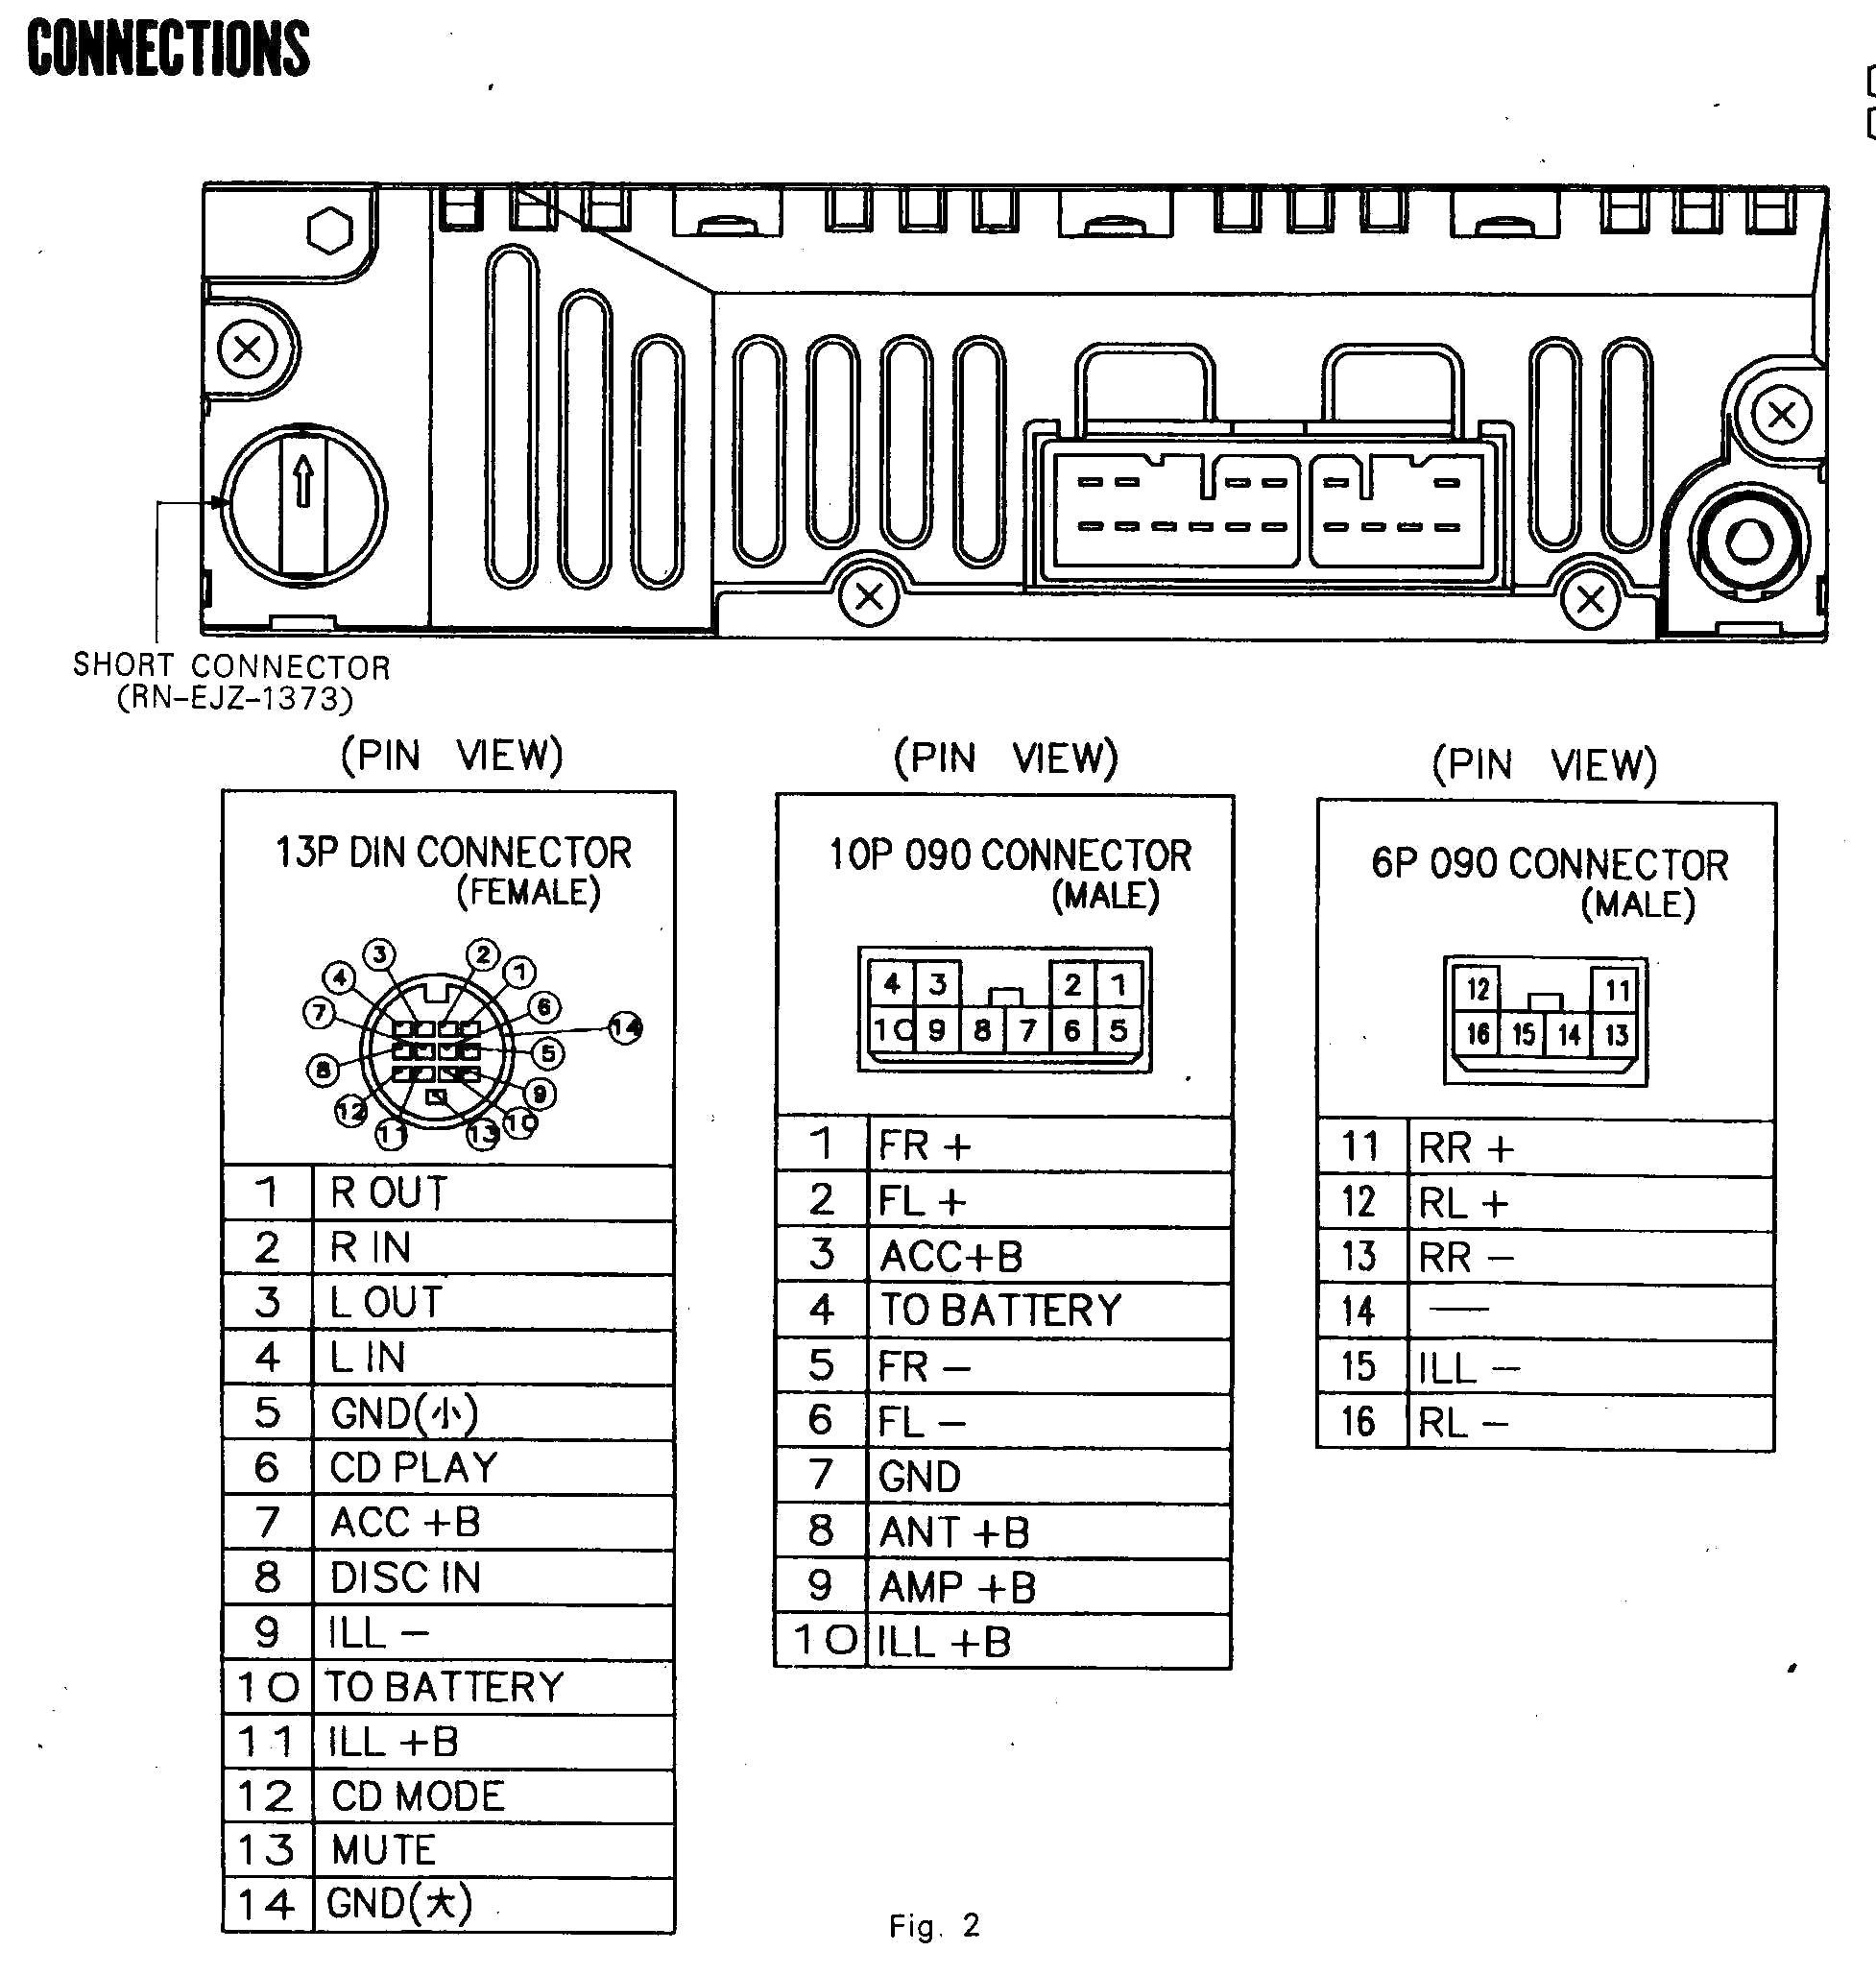 Best Of Wiring Diagram Under Cabinet Lighting Diagrams Digramssample Diagramimages Wiringdiagramsample Wirin Pioneer Car Stereo Sony Car Stereo Car Stereo